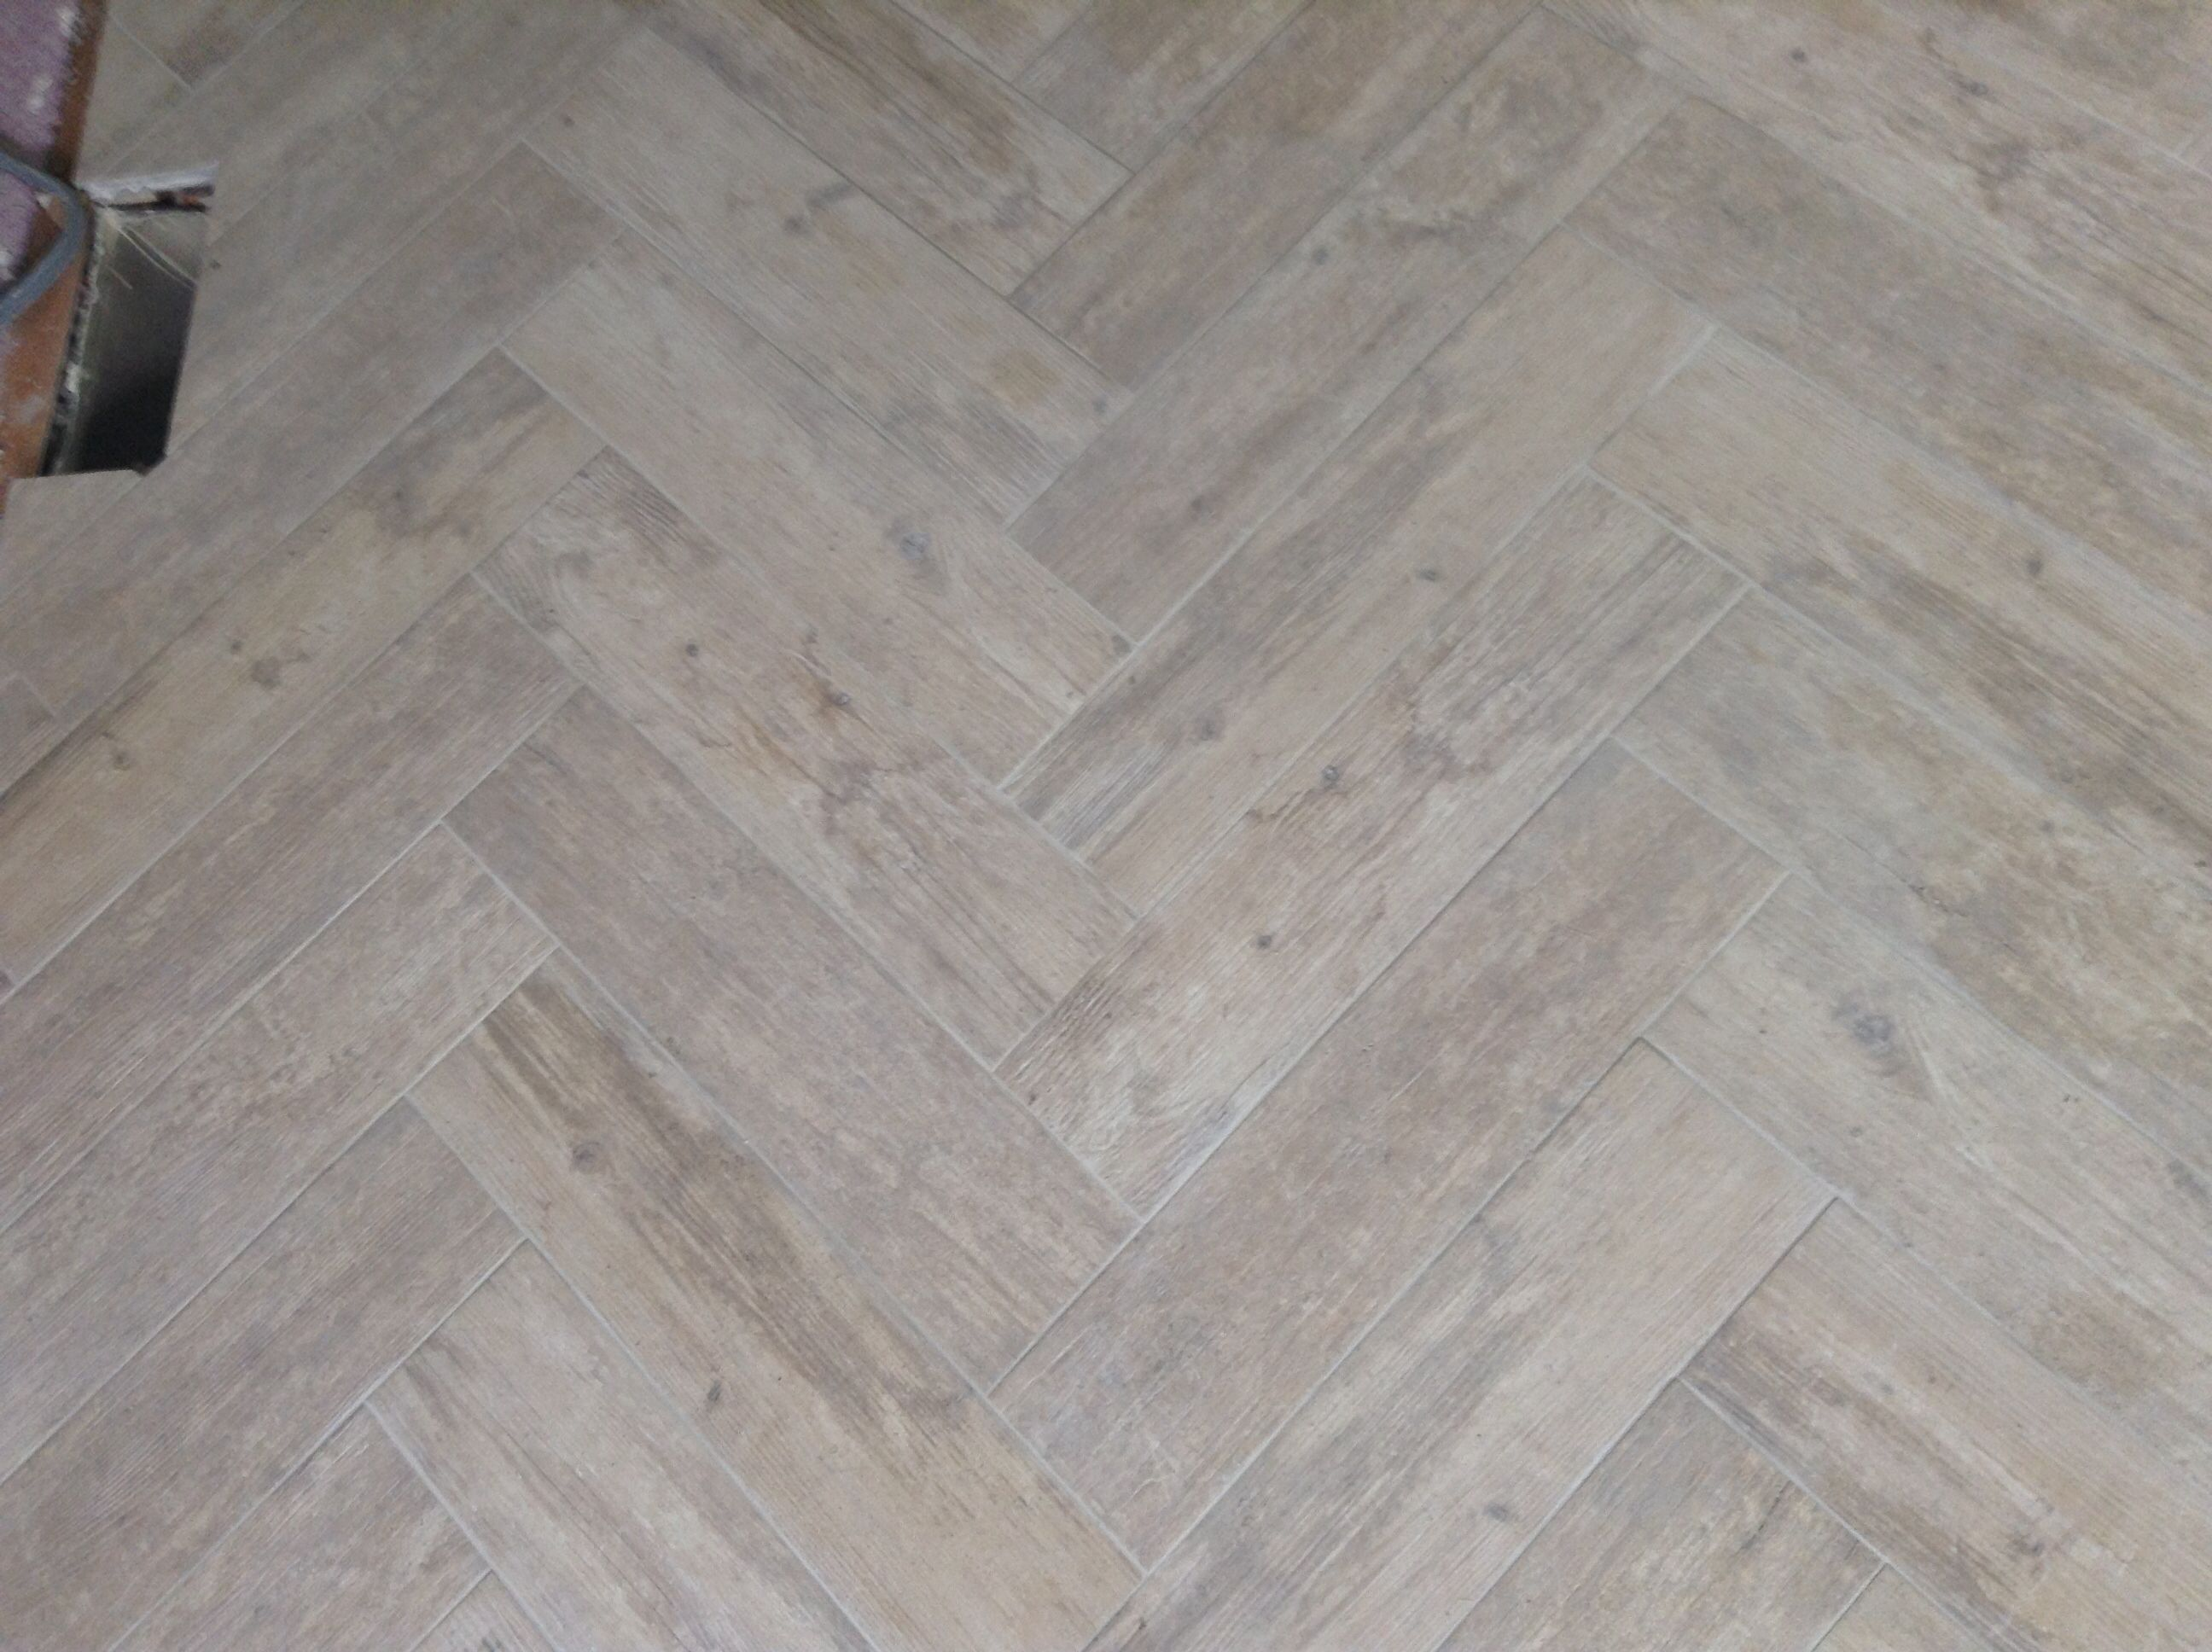 Kitchen floor chevron porcelain wood tile oyster gray grout from kitchen floor chevron porcelain wood tile oyster gray grout from home depot dailygadgetfo Image collections